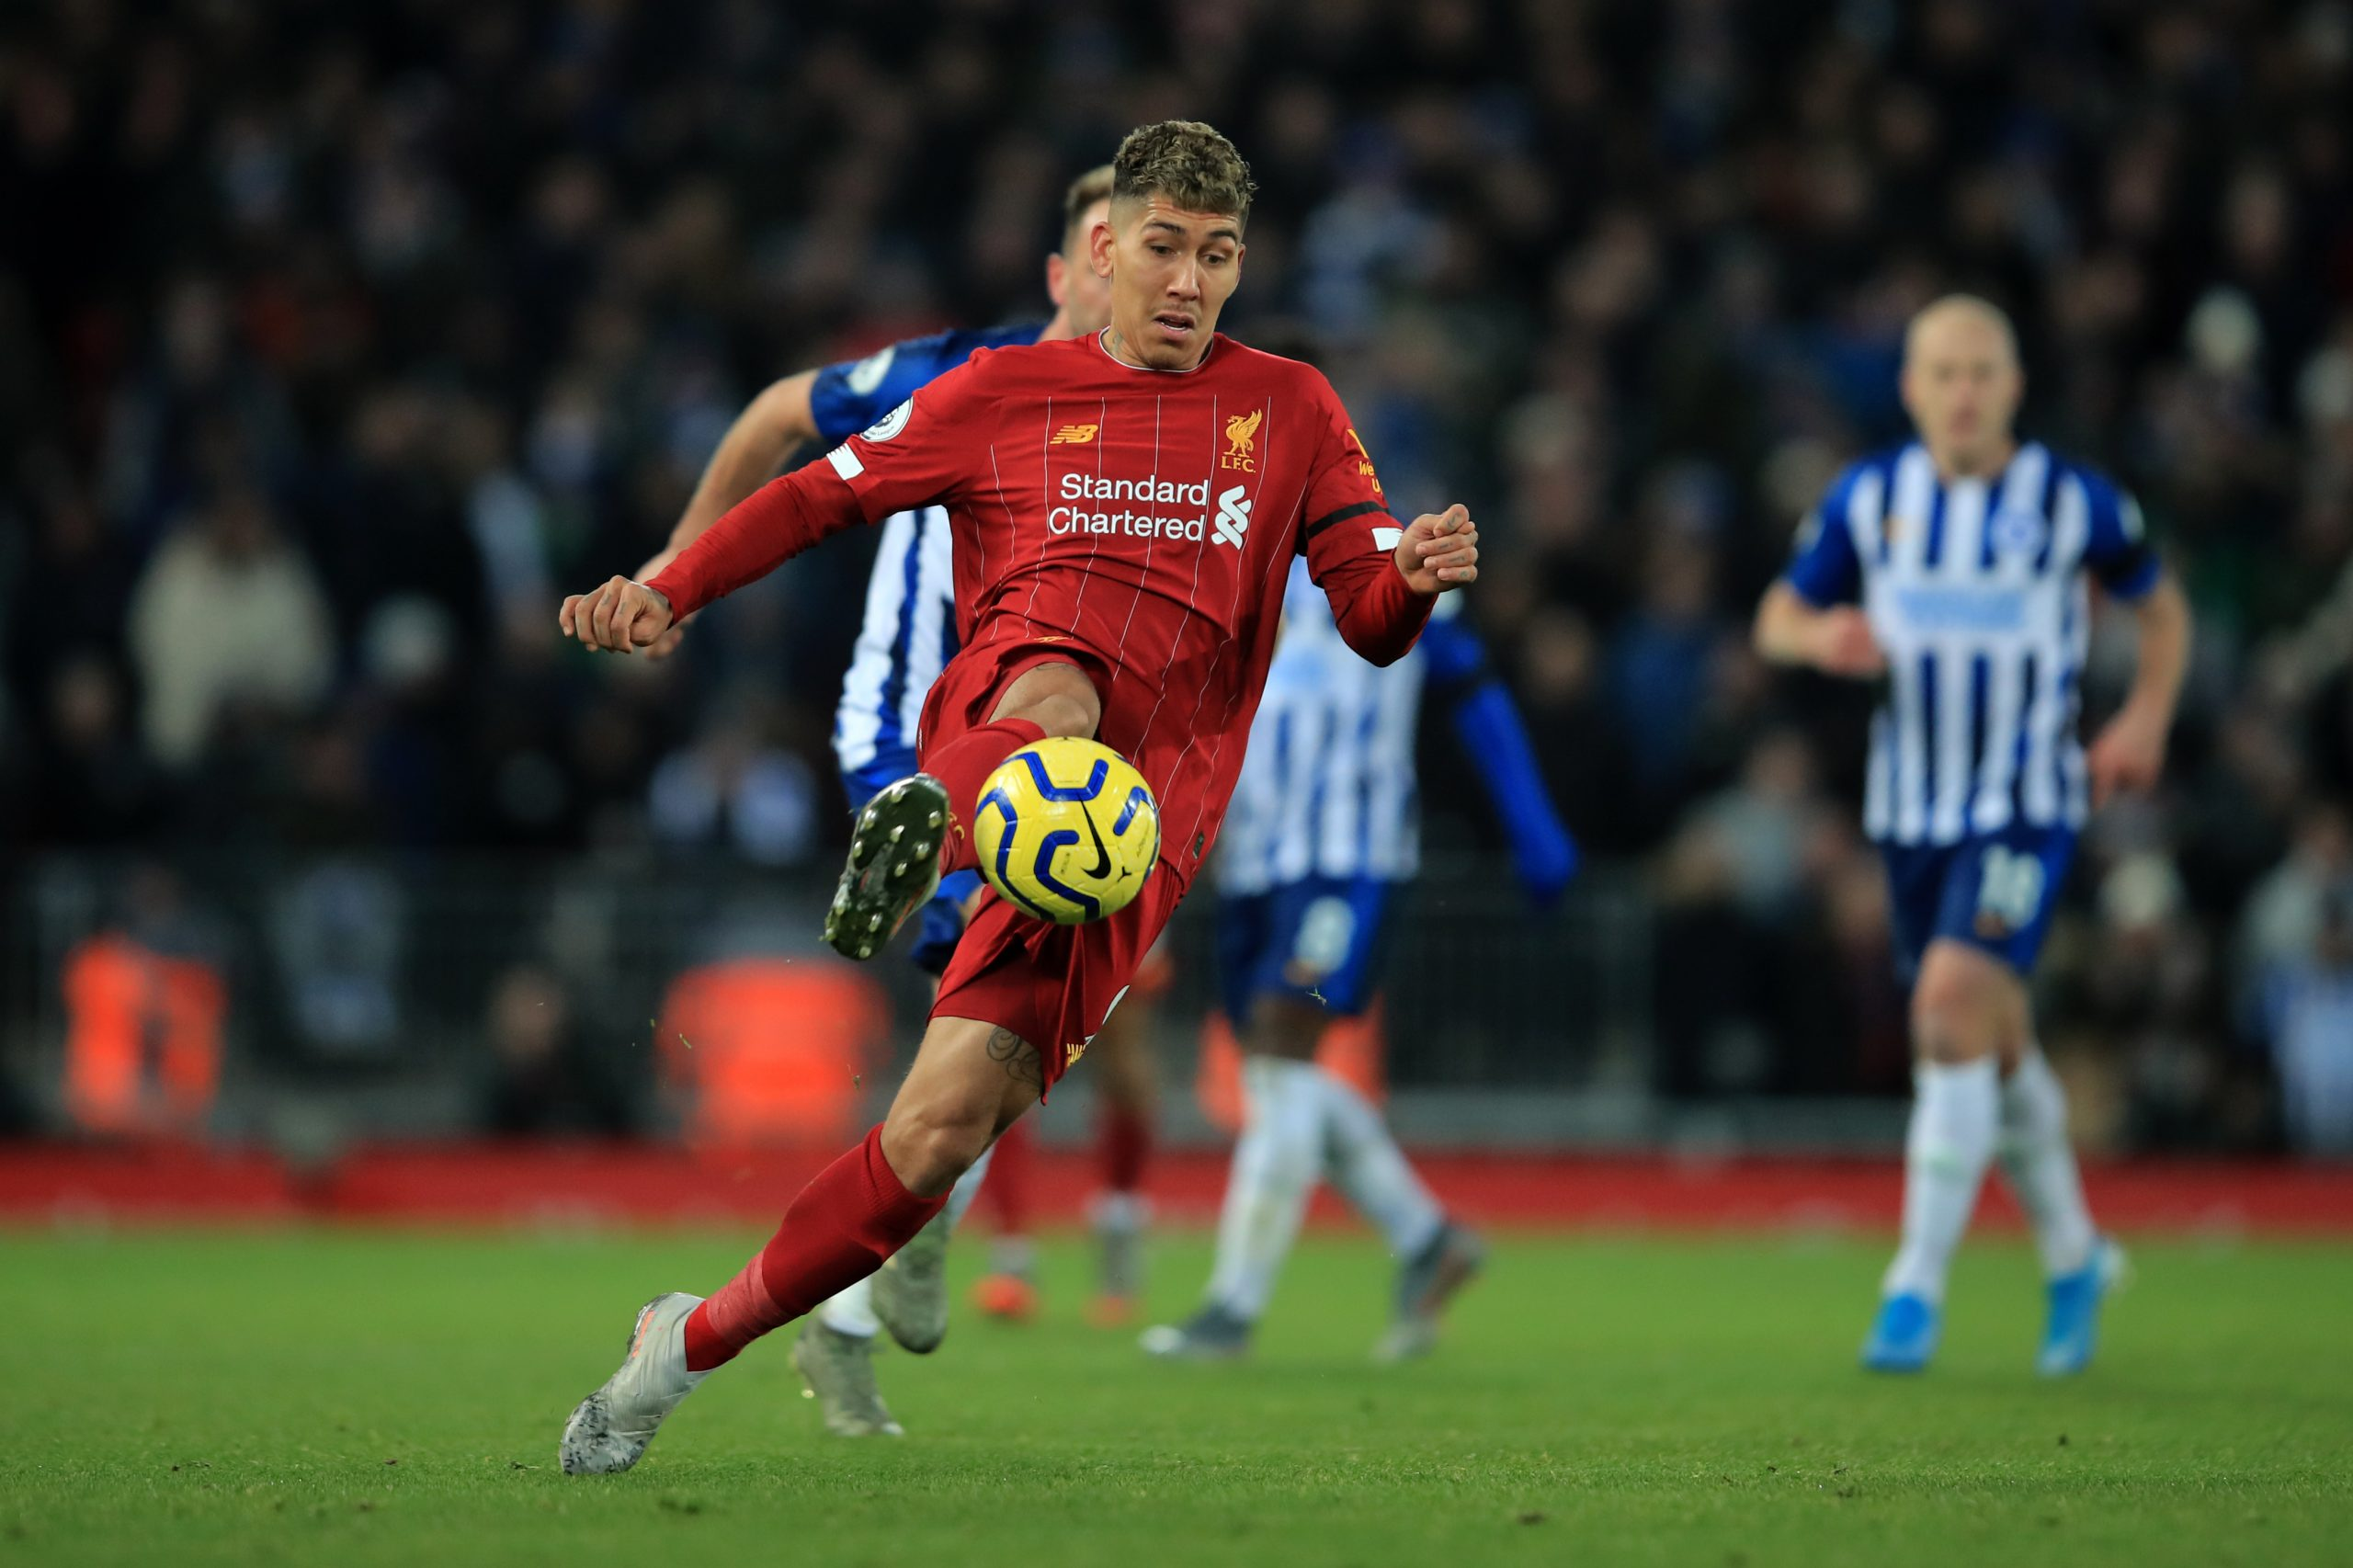 Roberto Firmino is expected to start against Brighton this weekend. (GETTY Images)